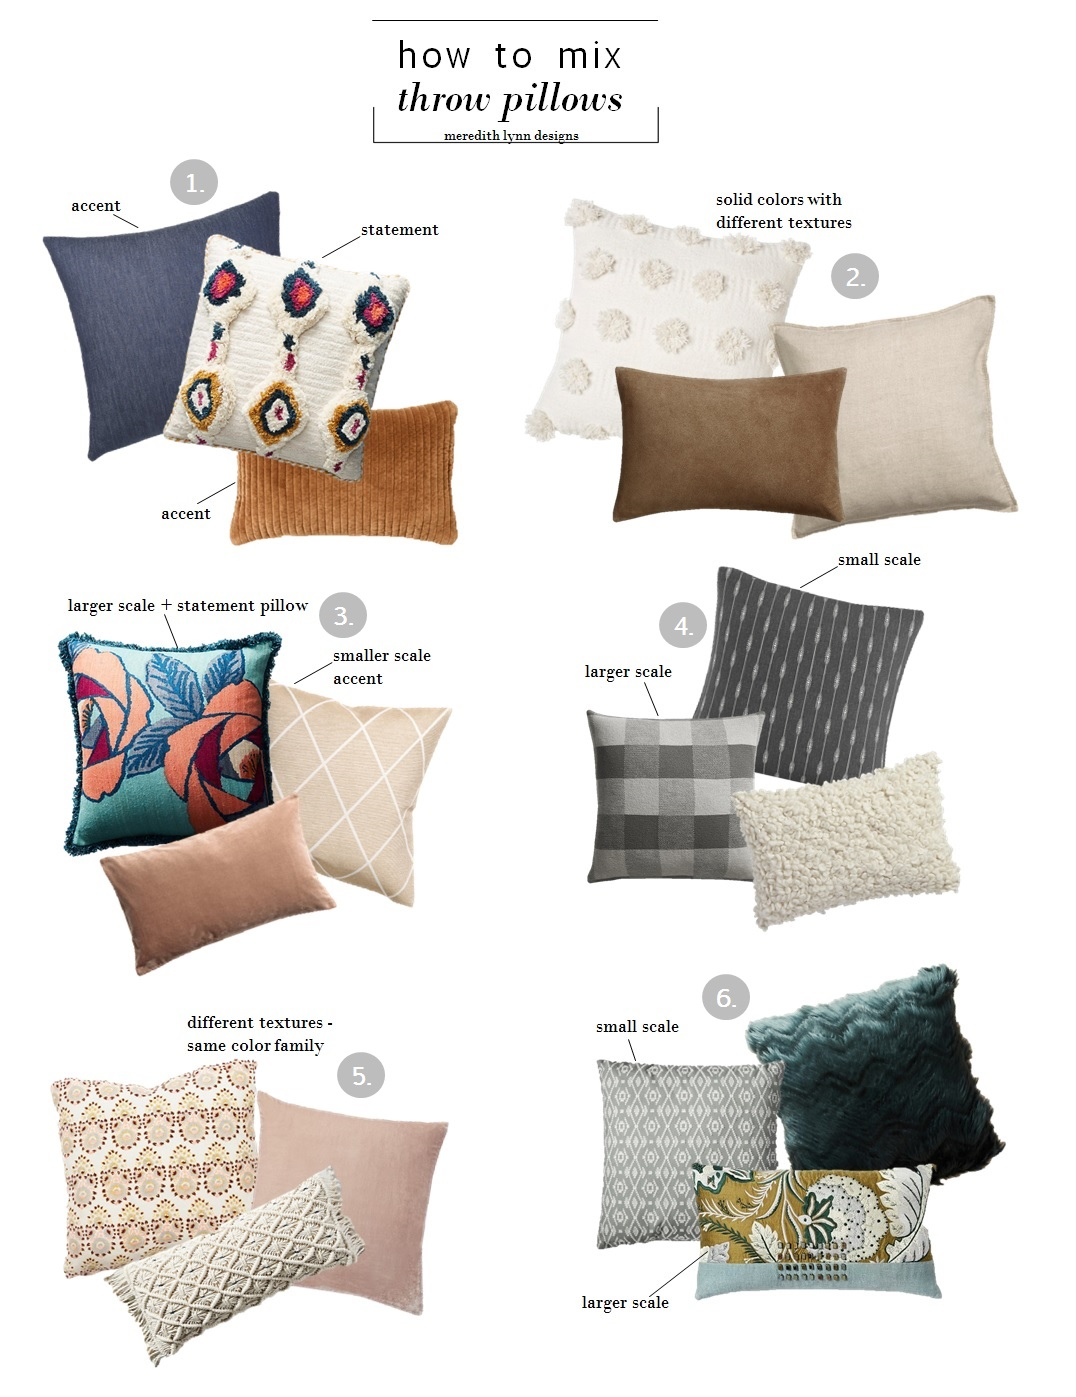 1.  whisker blue denim ;  tufted ayla pillow ;  quilted velvet oblong  | 2.  cream pom dot square ;  loki brown suede ;  washed linen cover  | 3.  sunworth silk pillow ;  glittery cushion cover ;  velvet cushion cover  | 4.  stripe polyester throw ;  victor pillow ;  toodle pillow  | 5.  ramona pillow ;  lush velvet pillow cover ;  fringed diendra pillow  | 6.  global weave throw pillow ; brocade  jacobian pillow cover ;  chevron faux fur